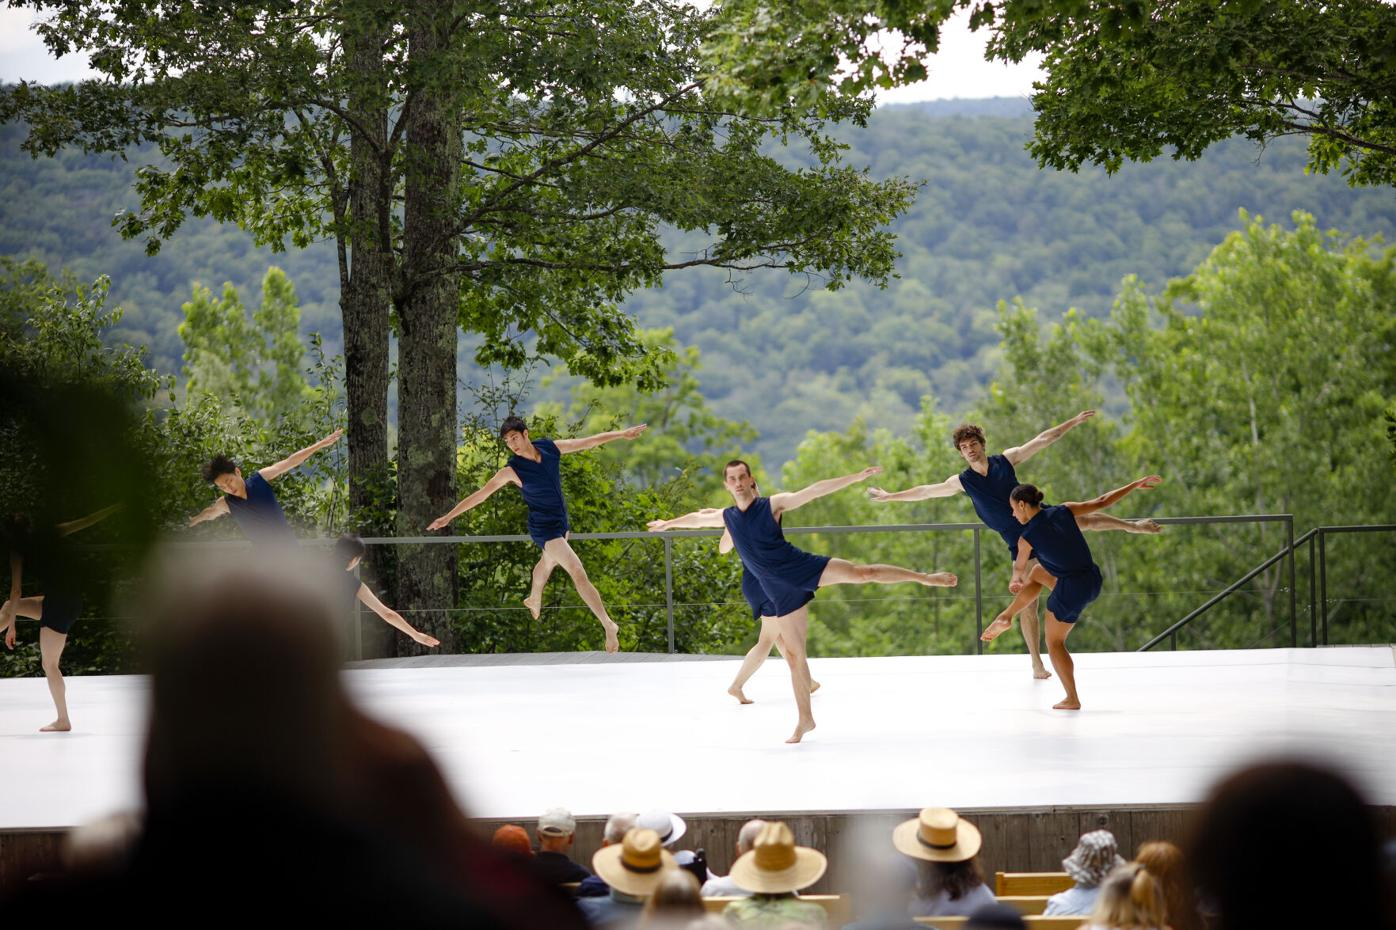 dancers perform on outdoor stage